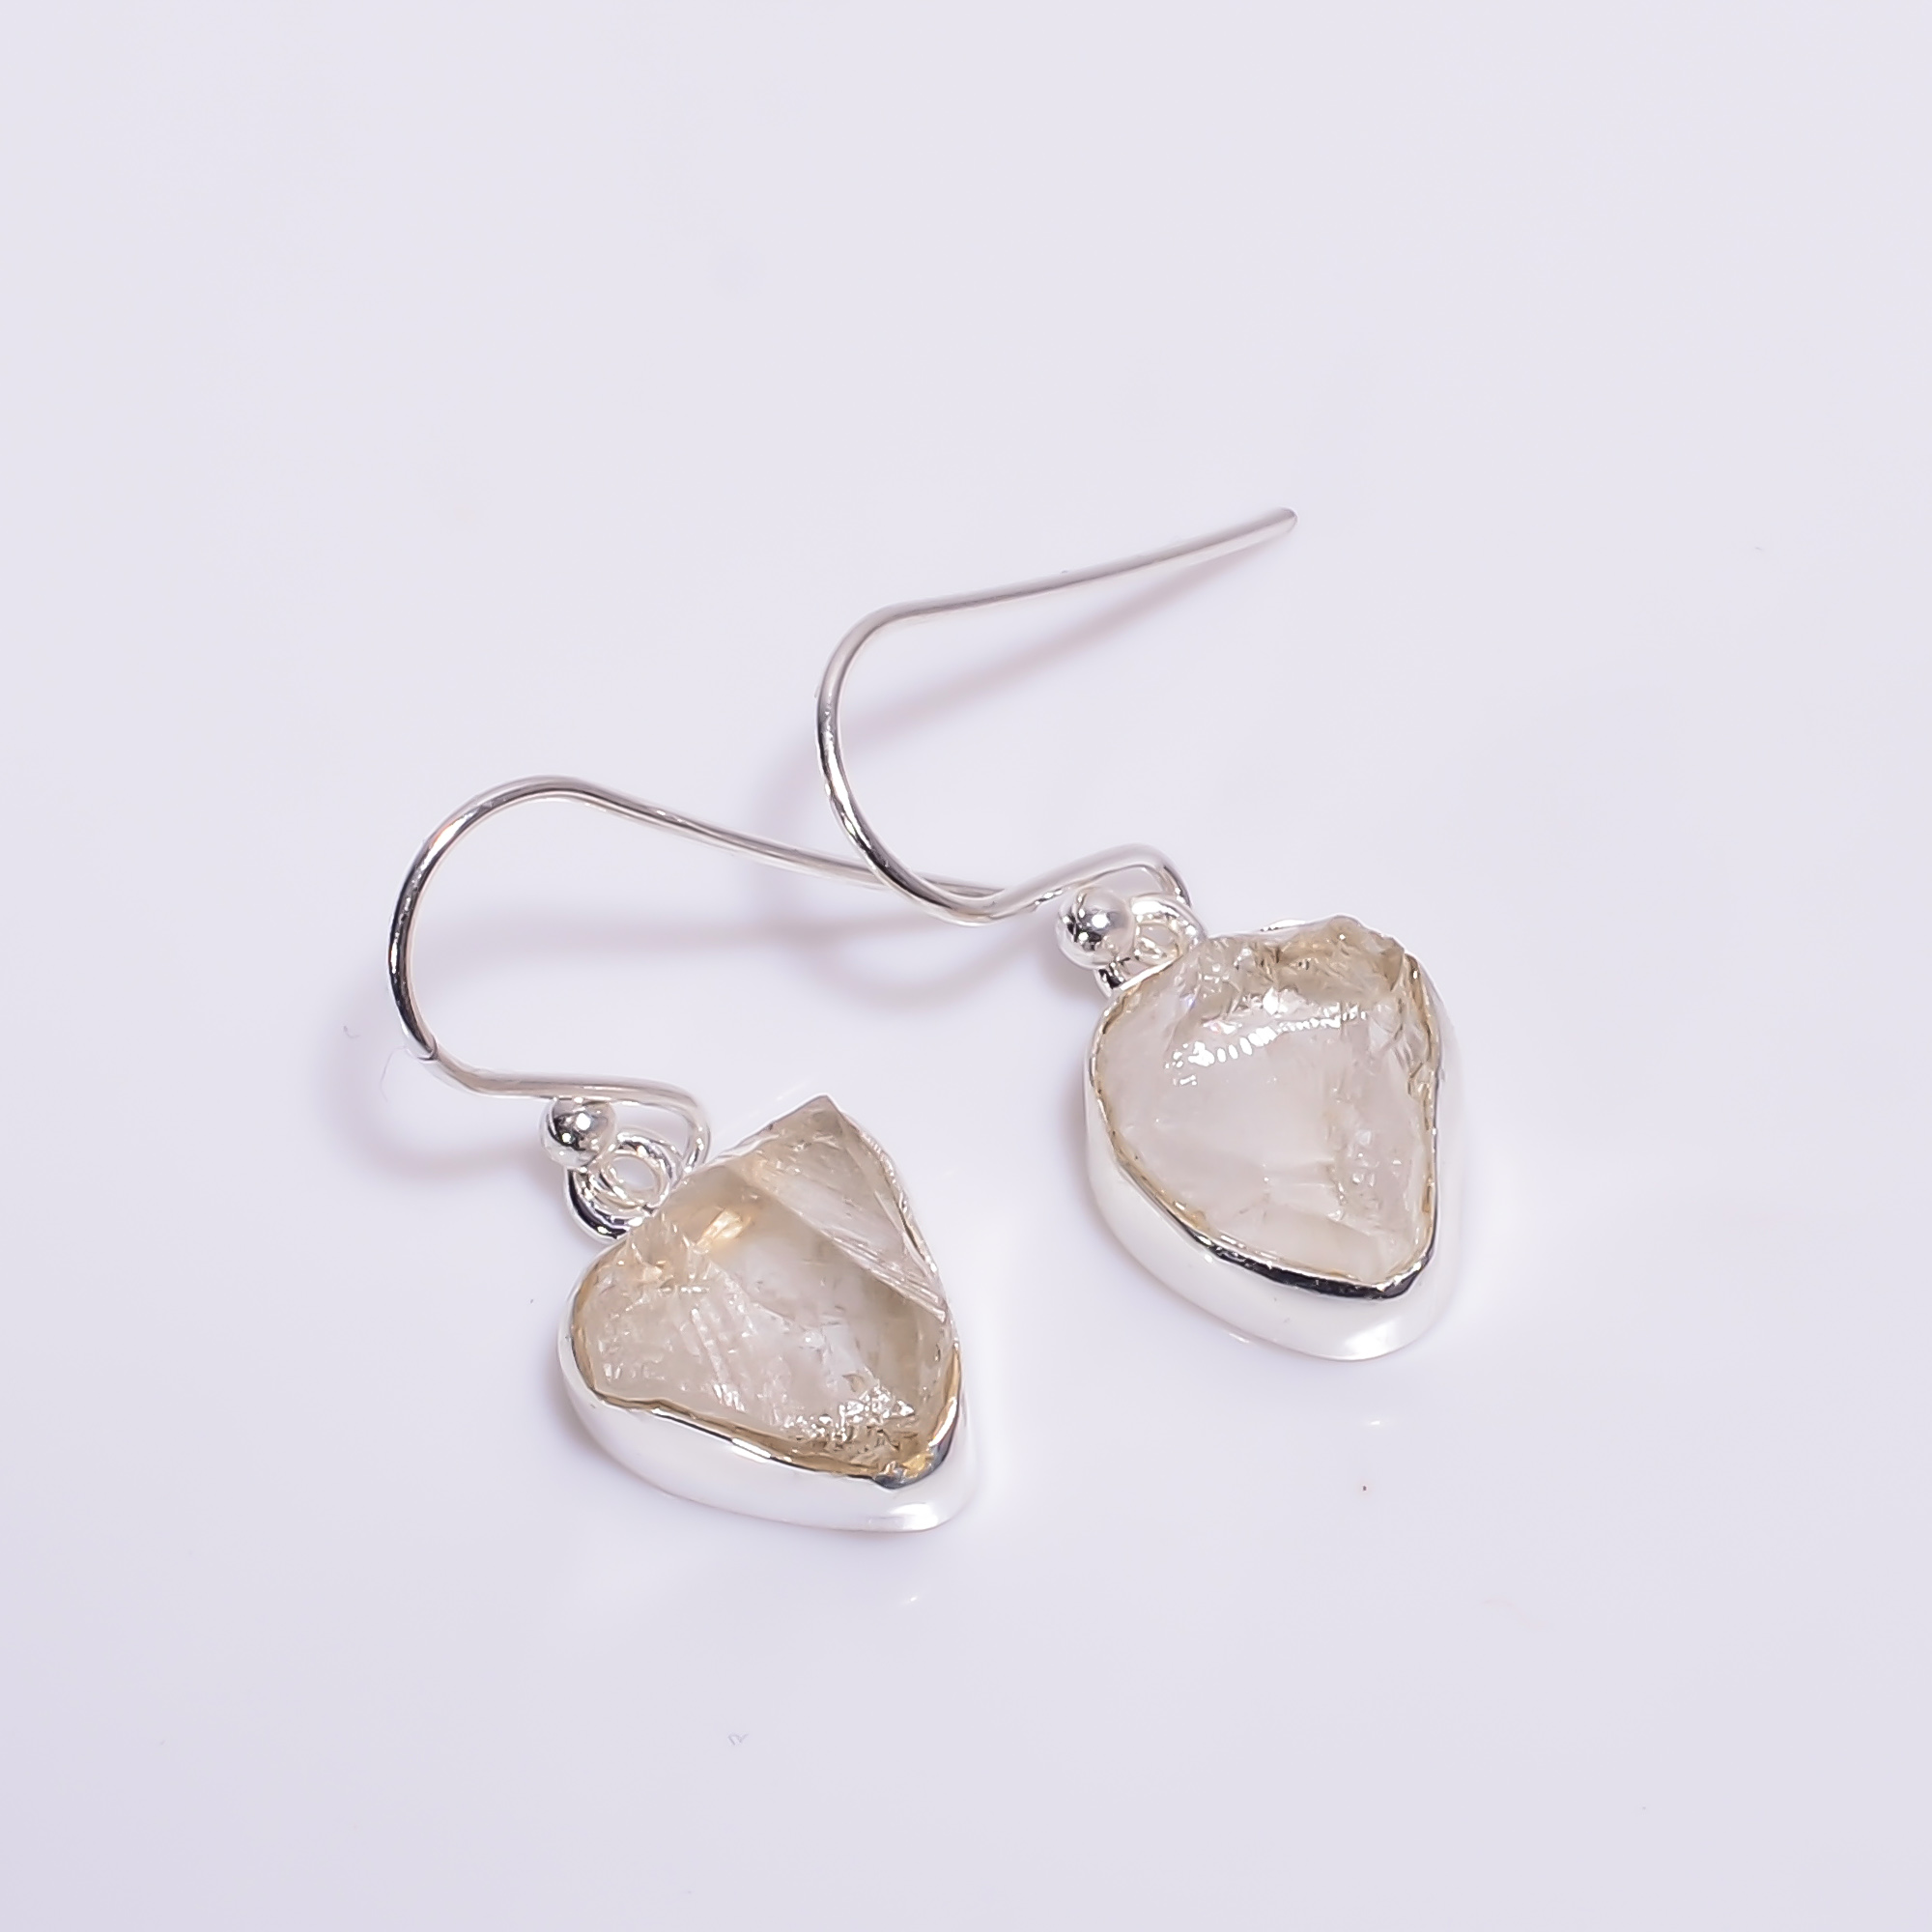 Crystal Raw Gemstone 925 Sterling Silver Drop Earrings